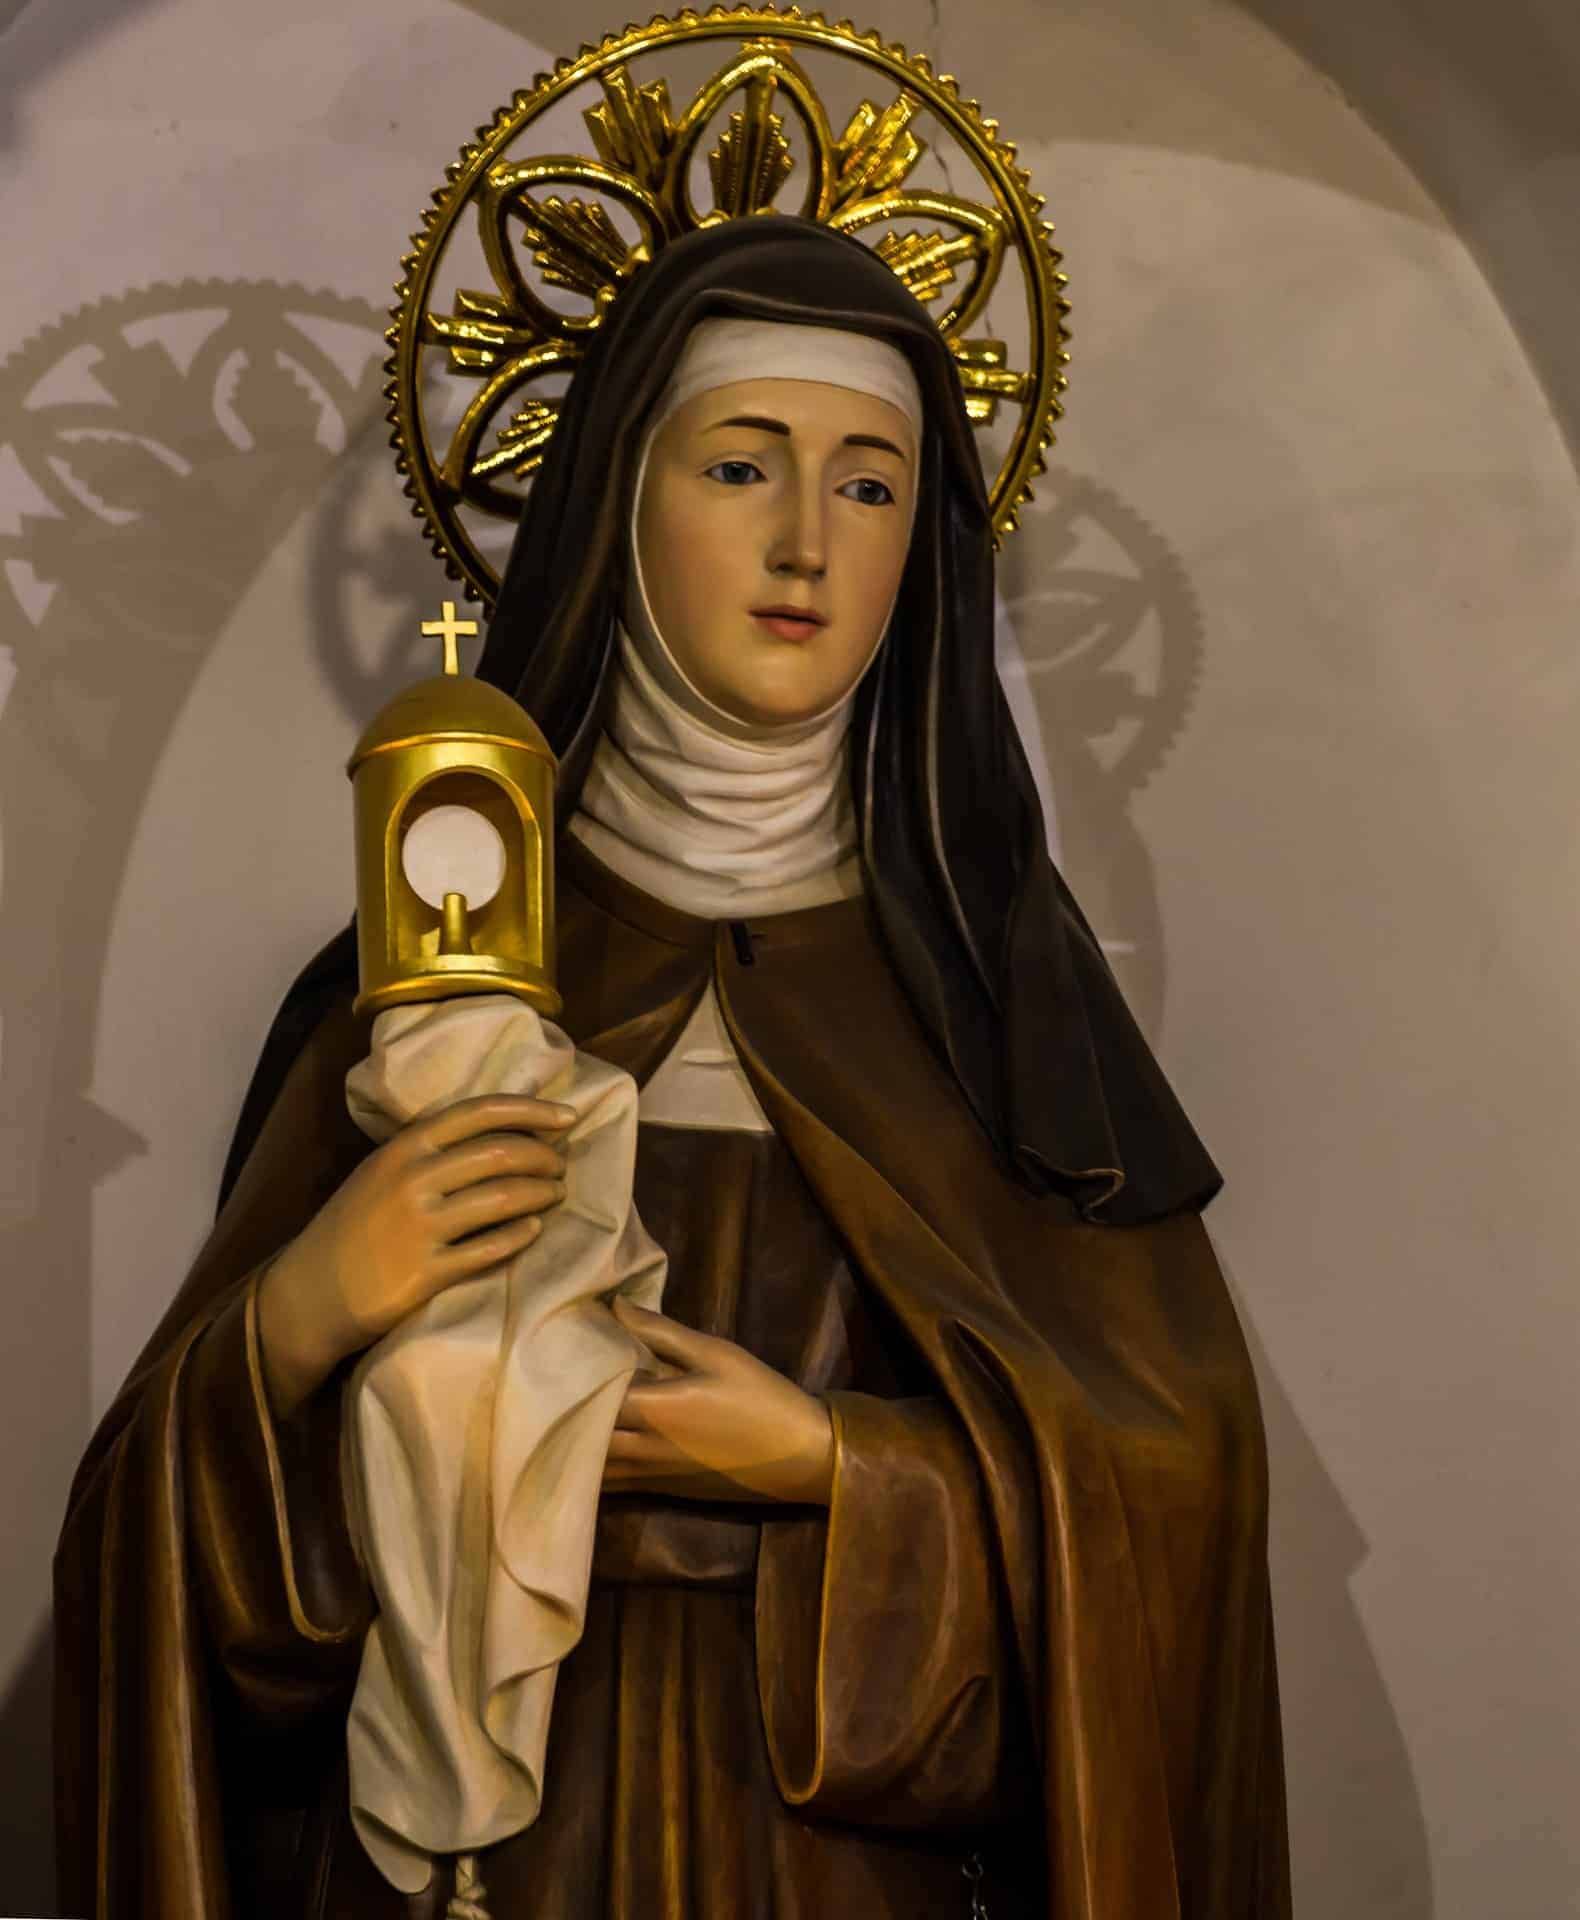 Saint Clare of Assisi statue